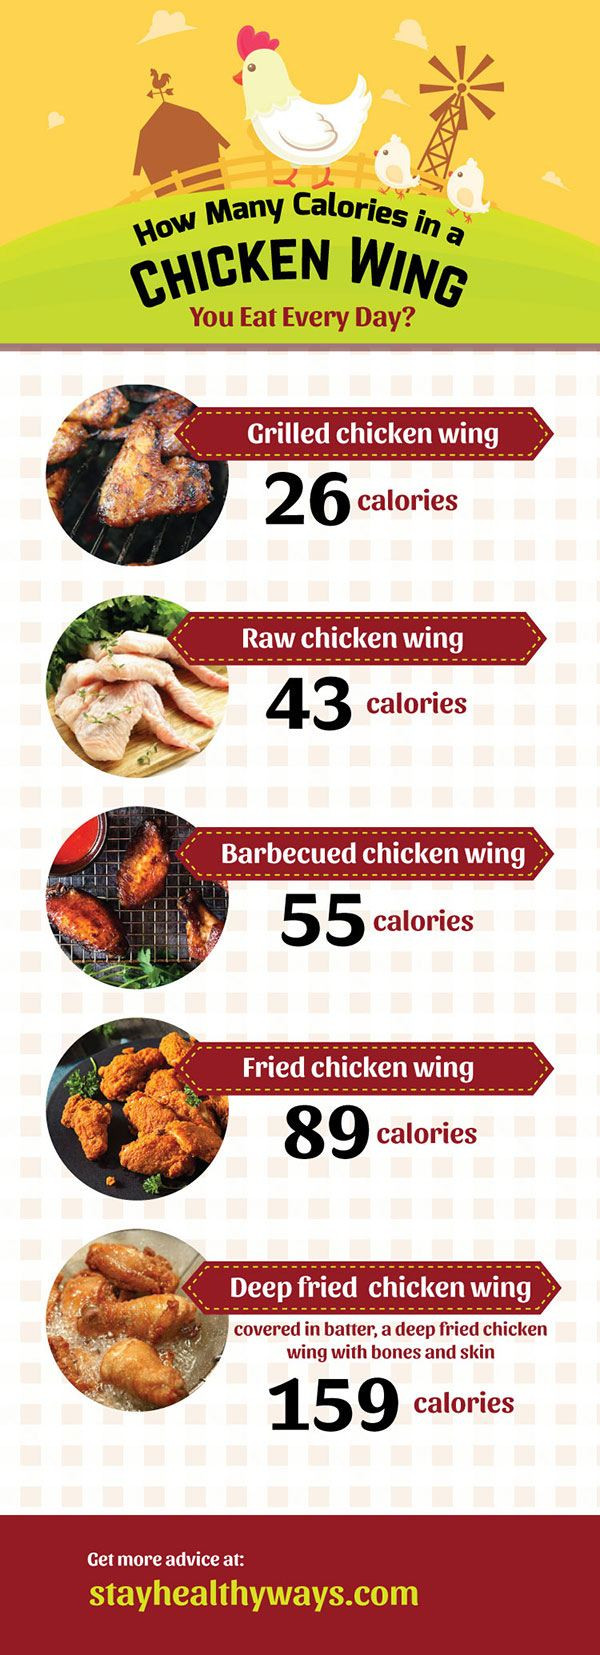 Baked Chicken Nutrition  How Many Calories In A Chicken Wing You Eat Every Day